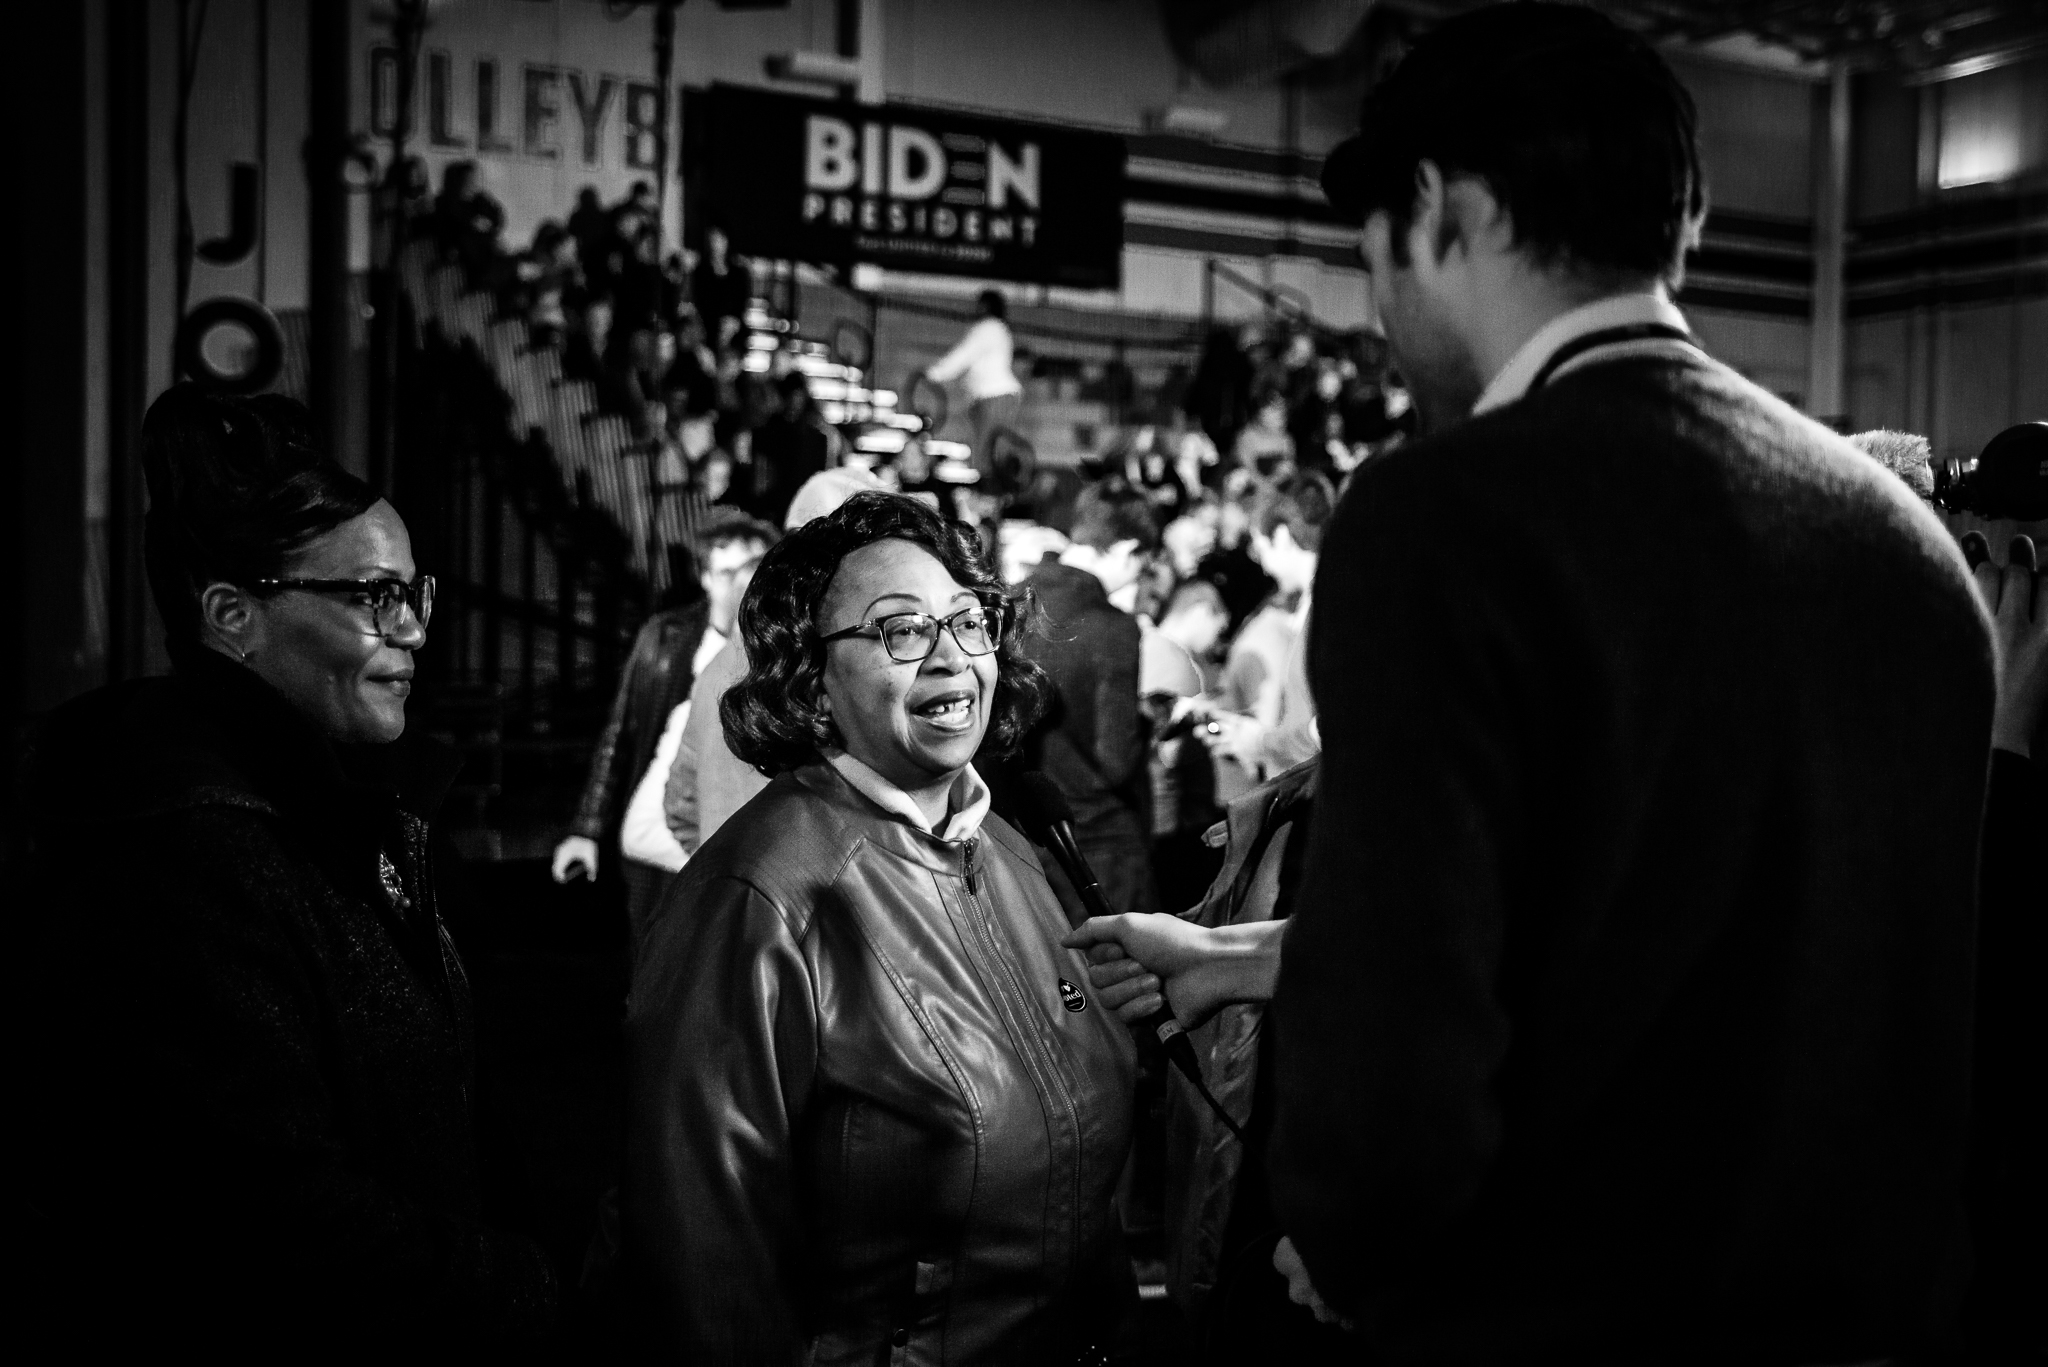 Reporters from The Japan Times ask questions at a Joe Biden rally in Columbia, South Carolina. February 29, 2020. Photo: Lance Monotone.